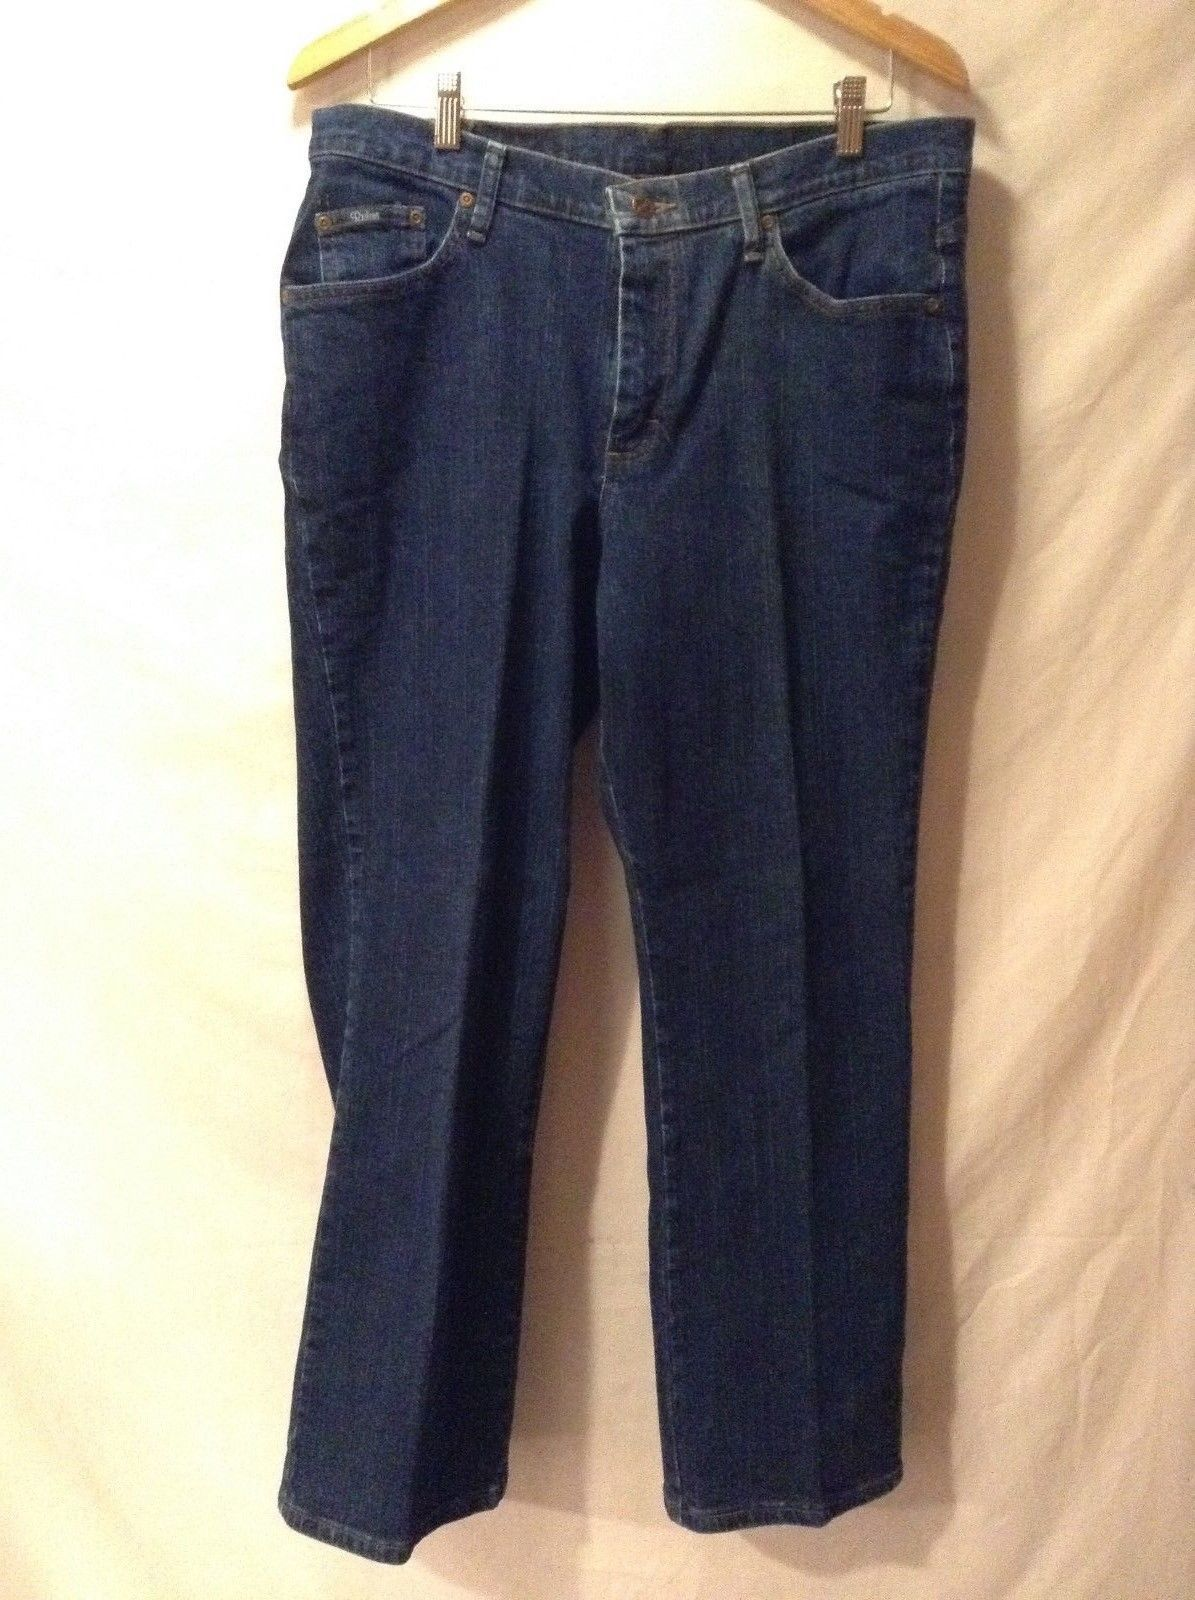 Womens Riders Denim Blue Jeans Size Large